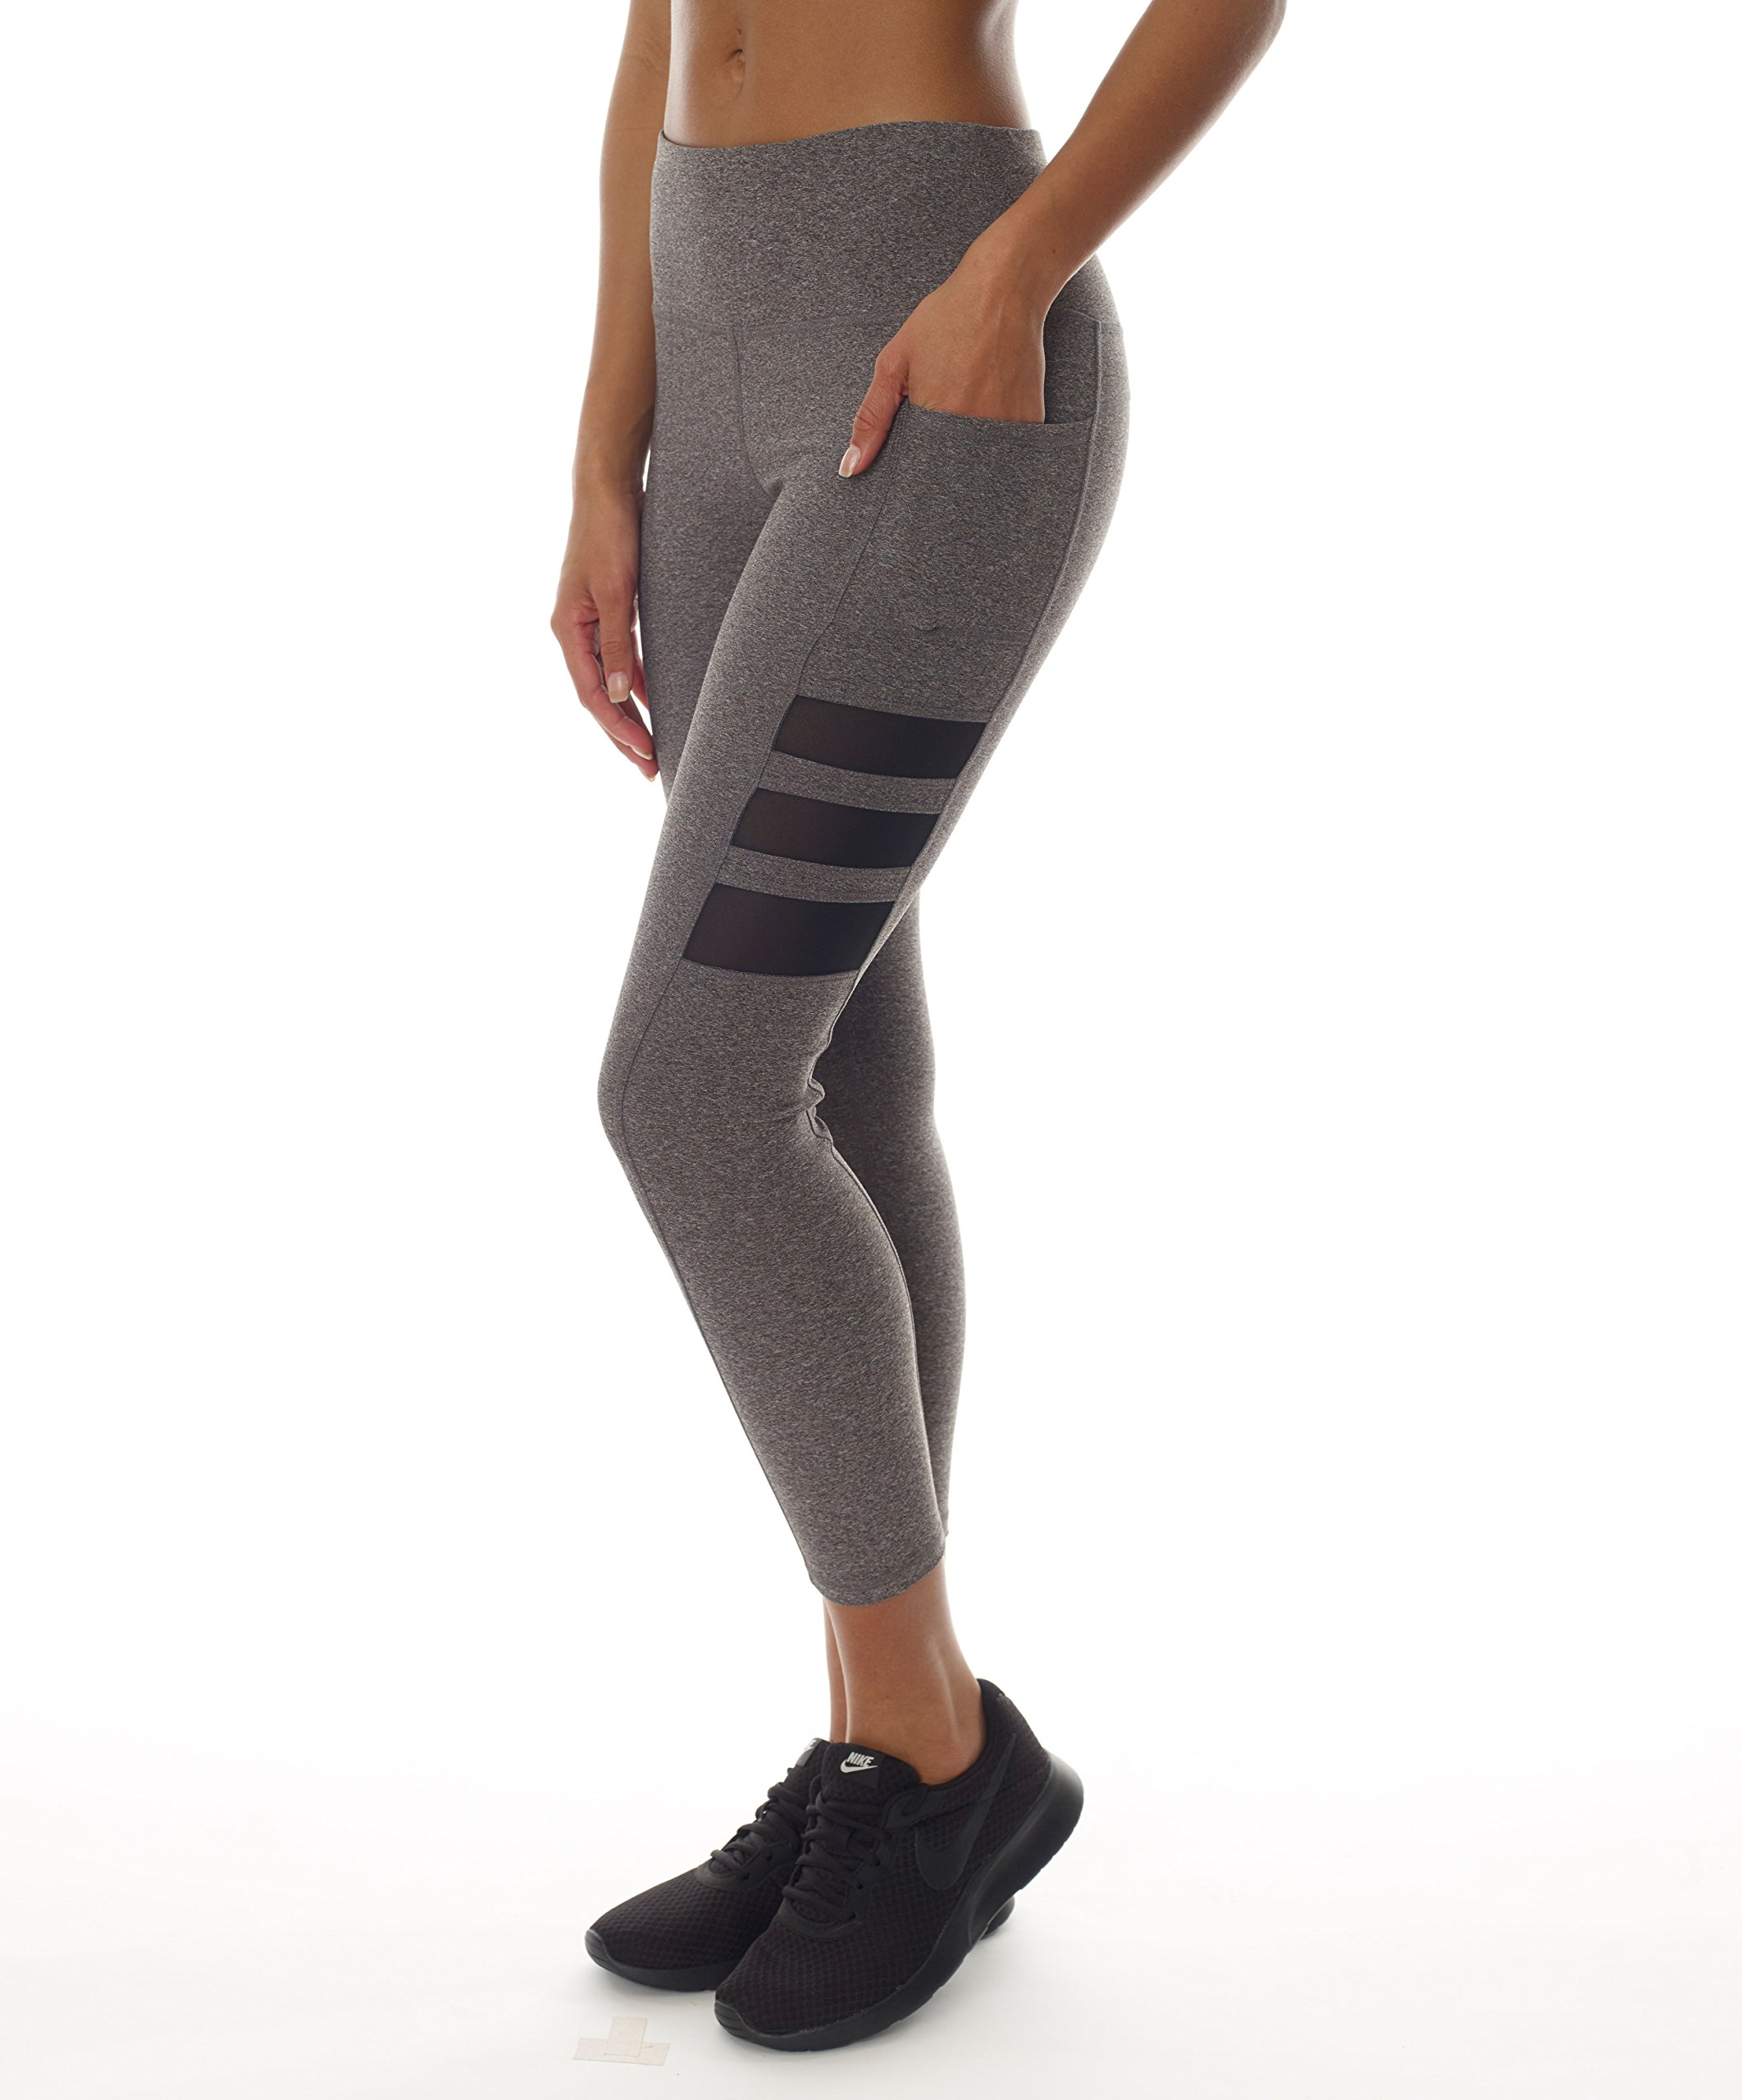 X by Gottex Mesh Workout Leggings | Unique, Printed & Stylish Activewear with Easy Access Pocket | 88% Polyester & 12% Spandax Fabric | Stretchable, Breathable & Dry Fit | Full Length & High Waist